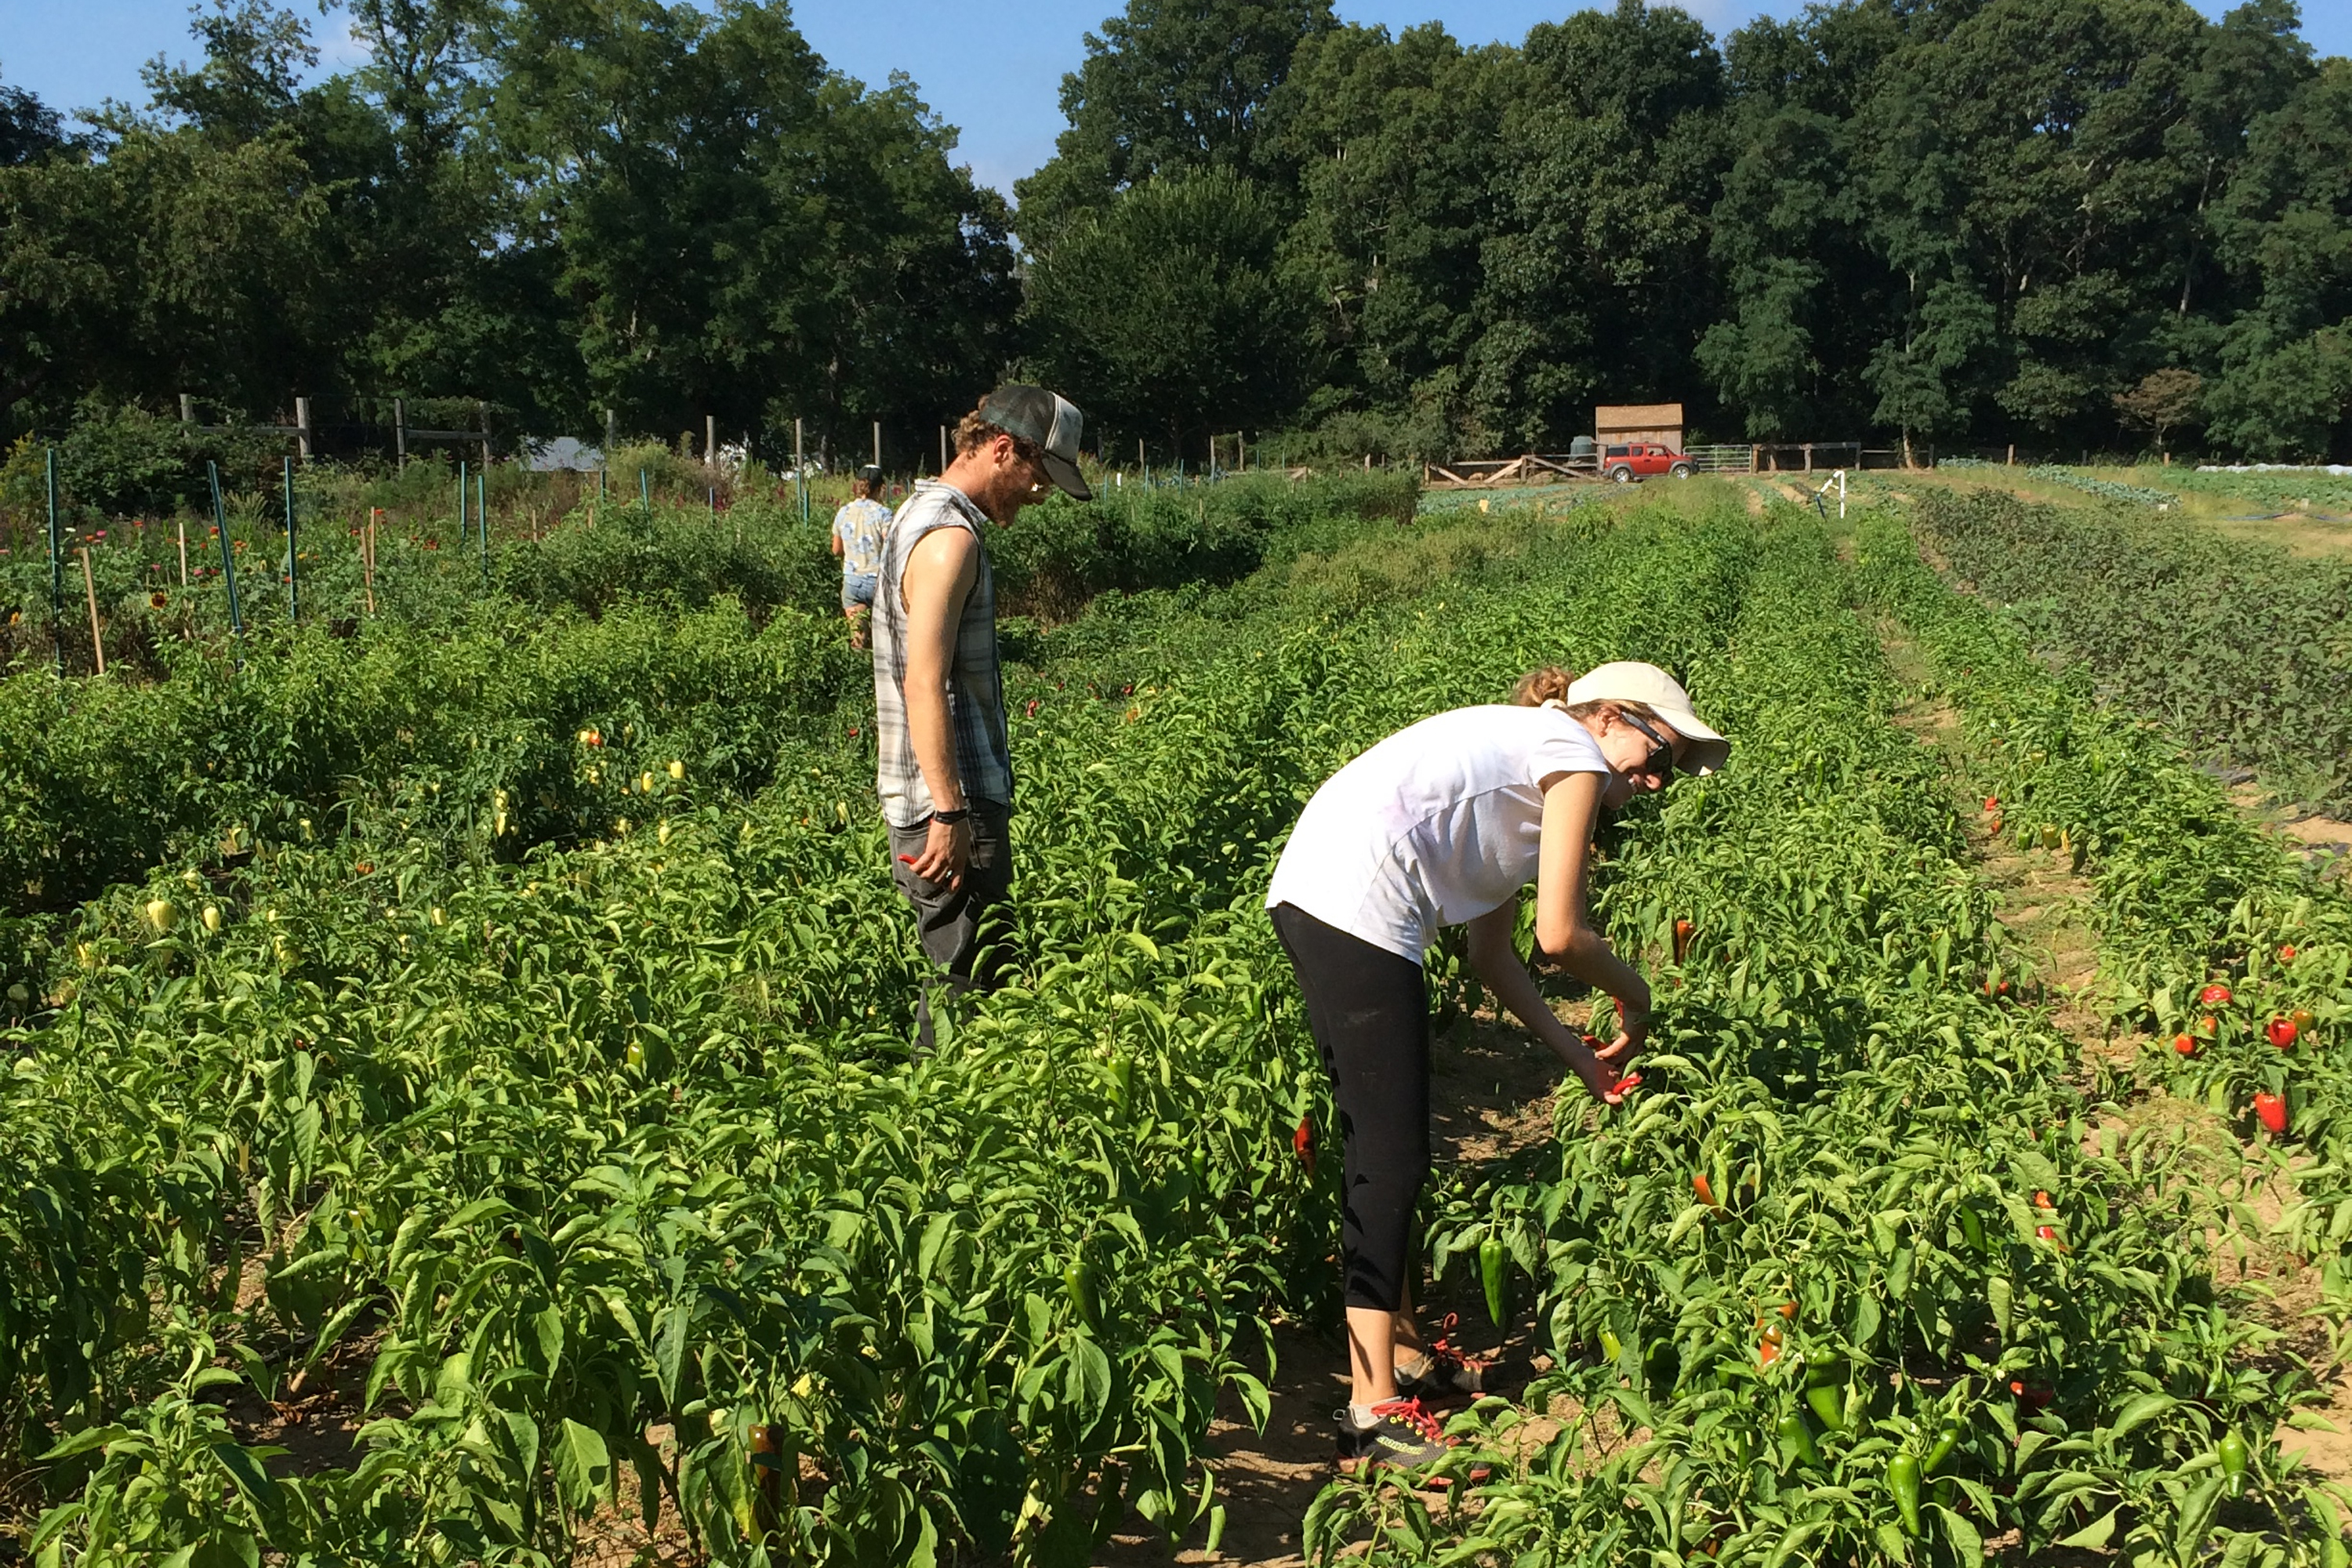 Gathering chili peppers with my homeboy Cody